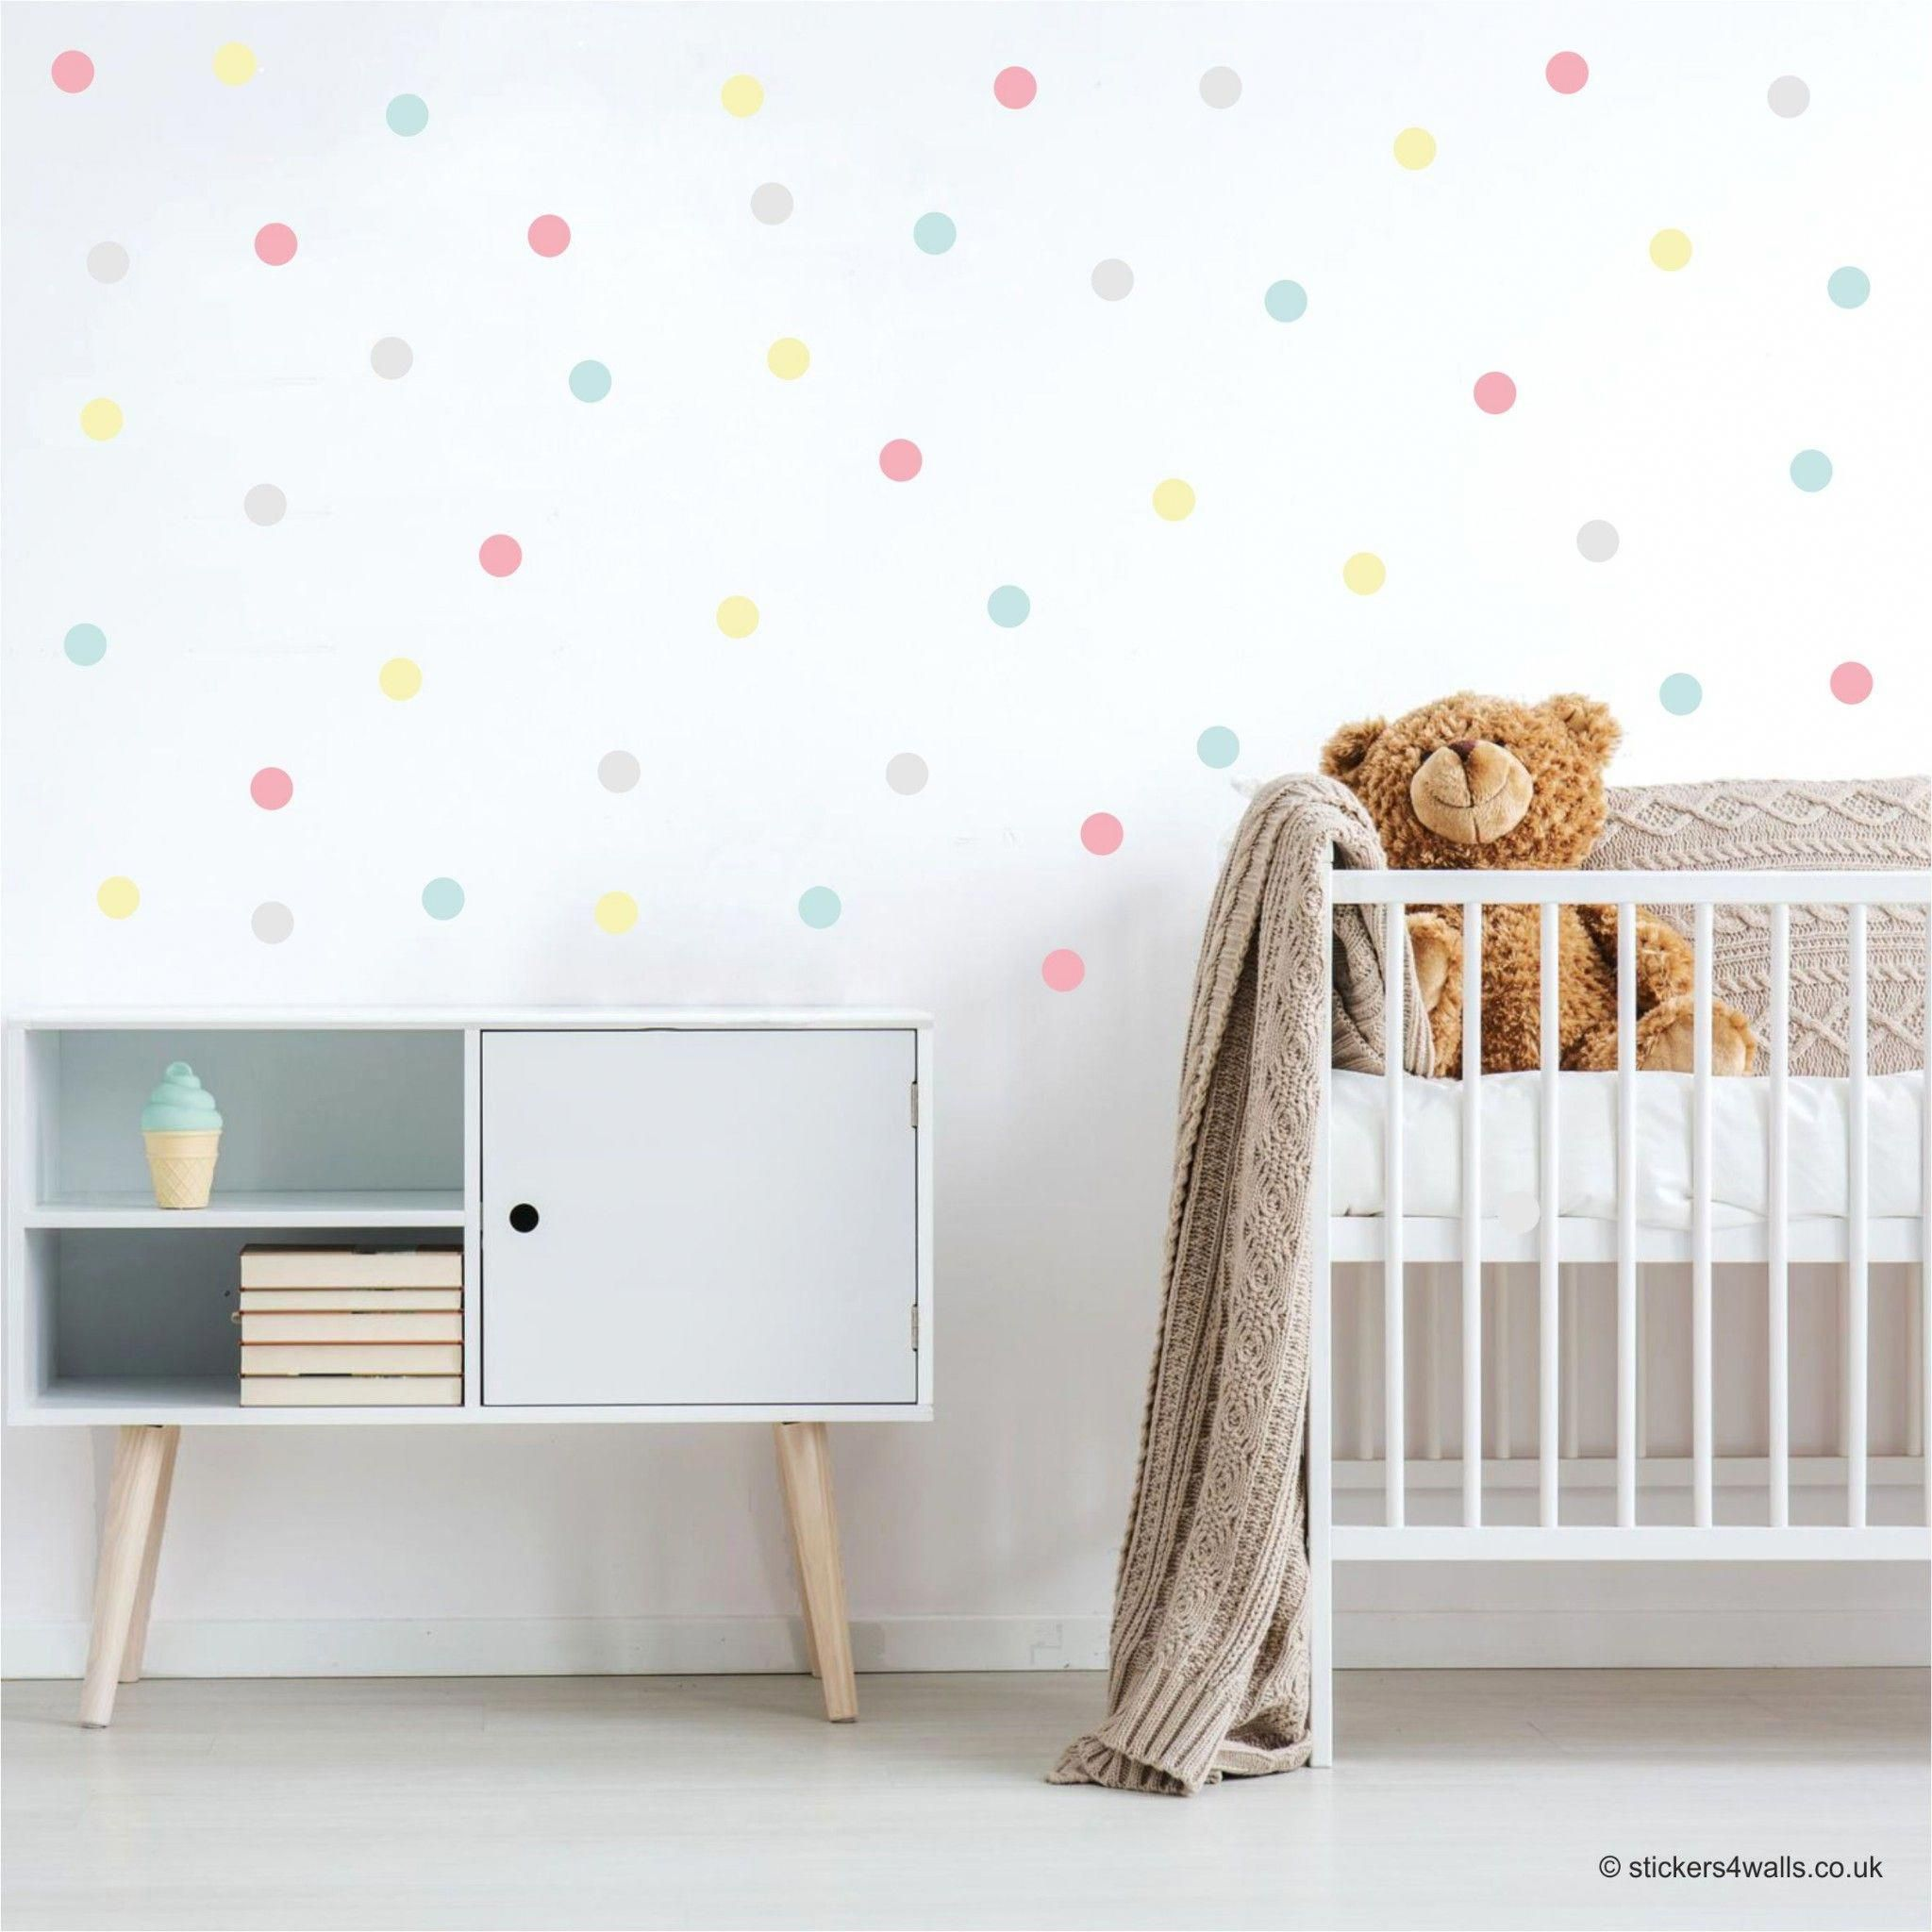 Polka Dot Wall Stickers A Set Of Cute Pastel Dot Wall Stickers These Look Really Sweet On Nur Polka Dot Walls Wall Stickers Polka Dots Nursery Wall Stickers